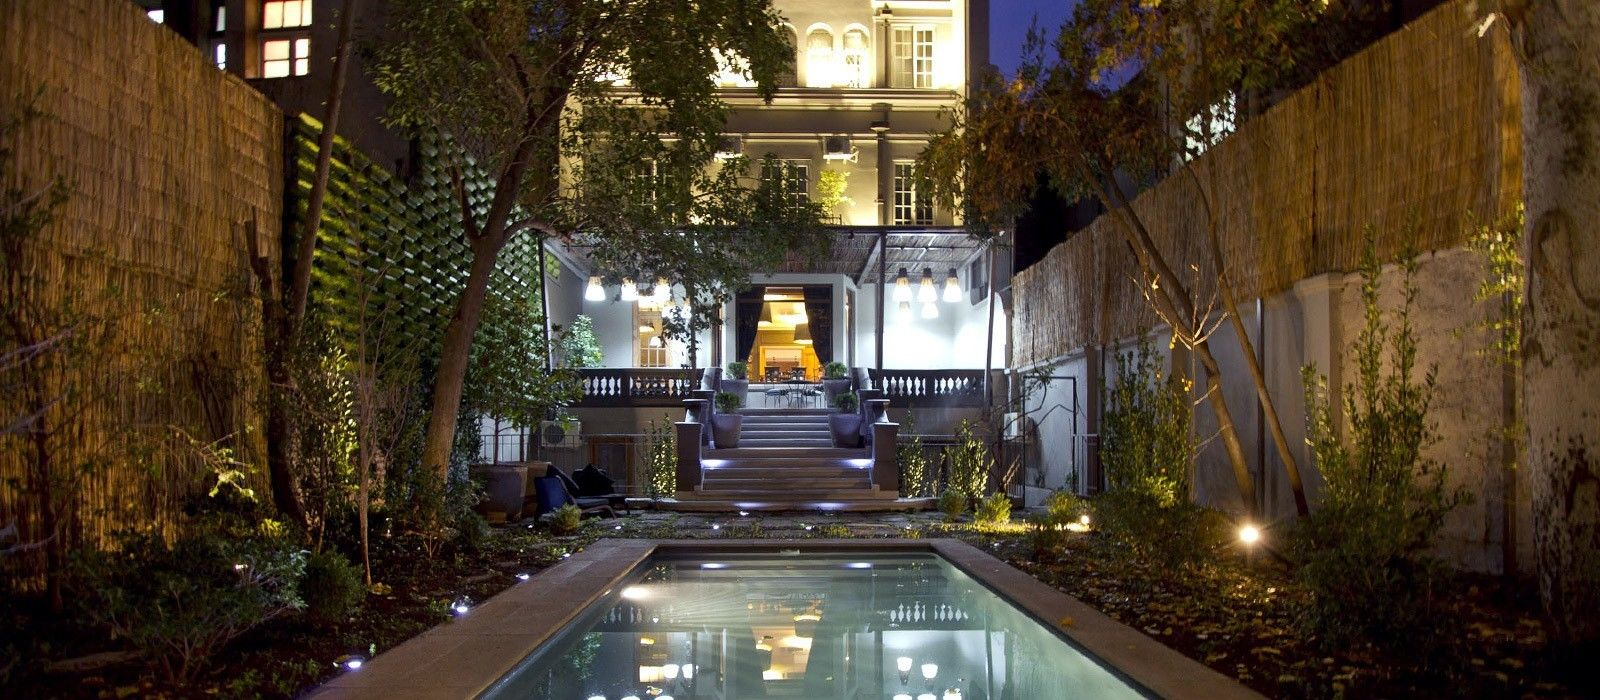 Top 10 unique boutique hotels enchanting travels for Great boutique hotels